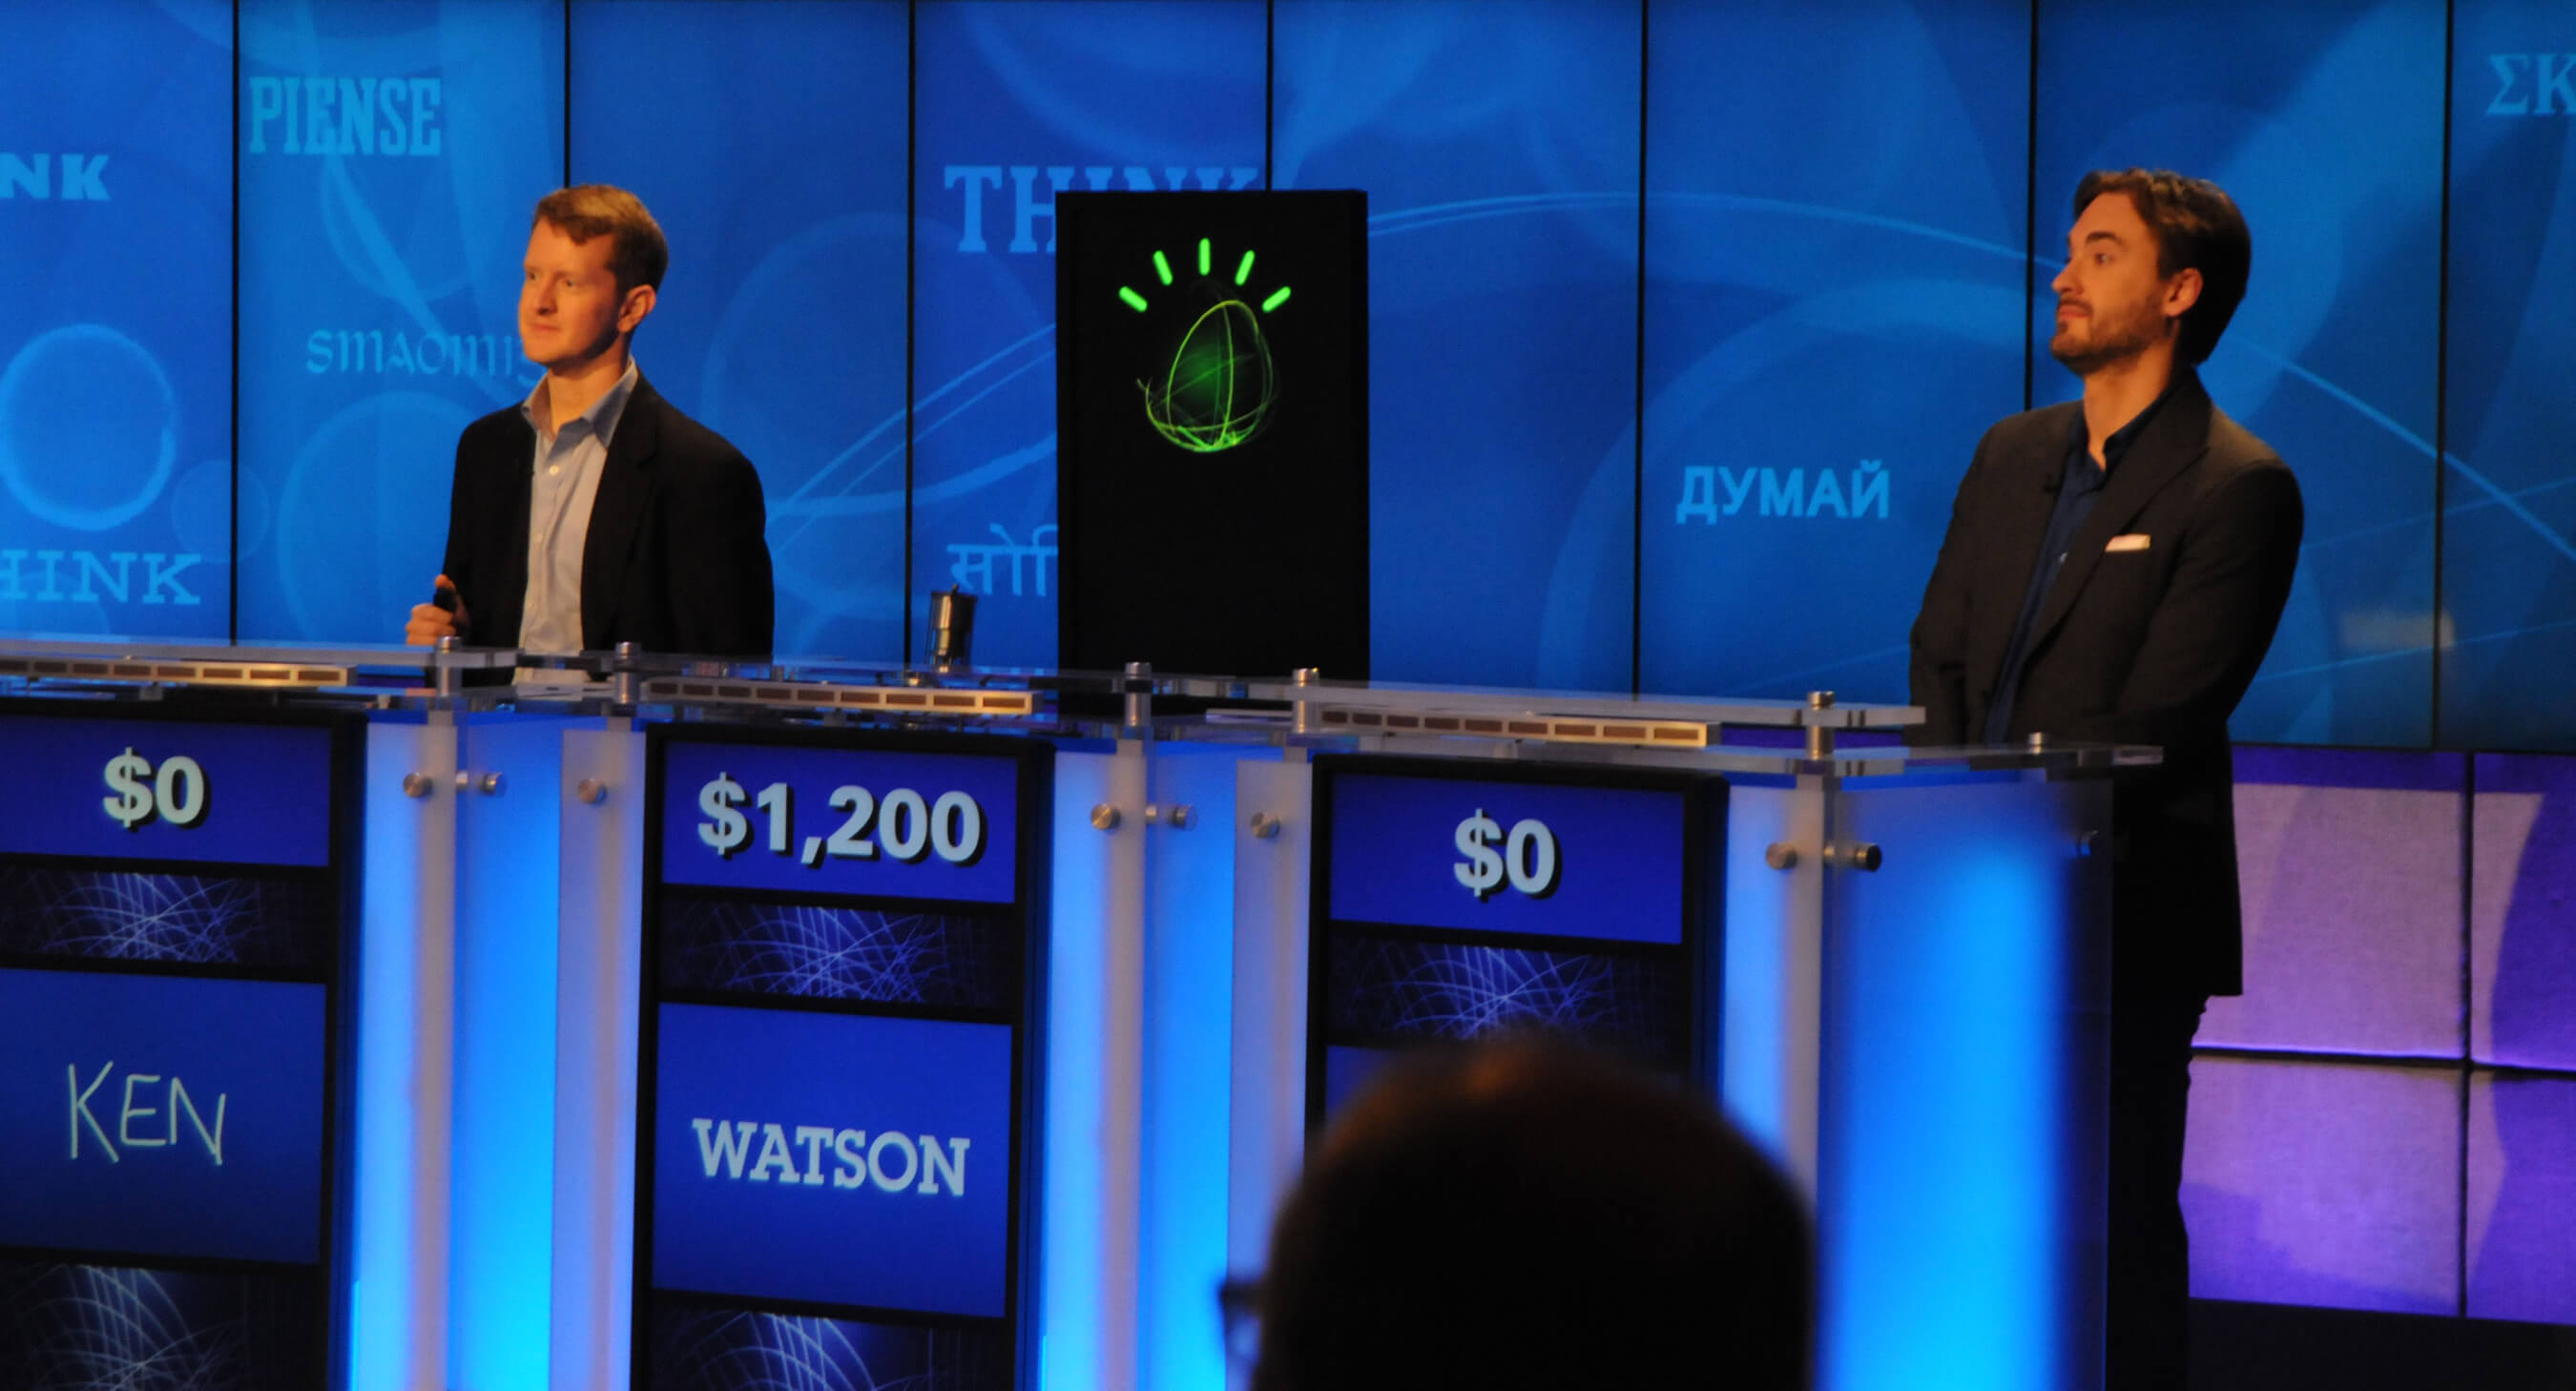 Six Years After An Epic Jeopardy! Win, IBM Watson Has a Real Job